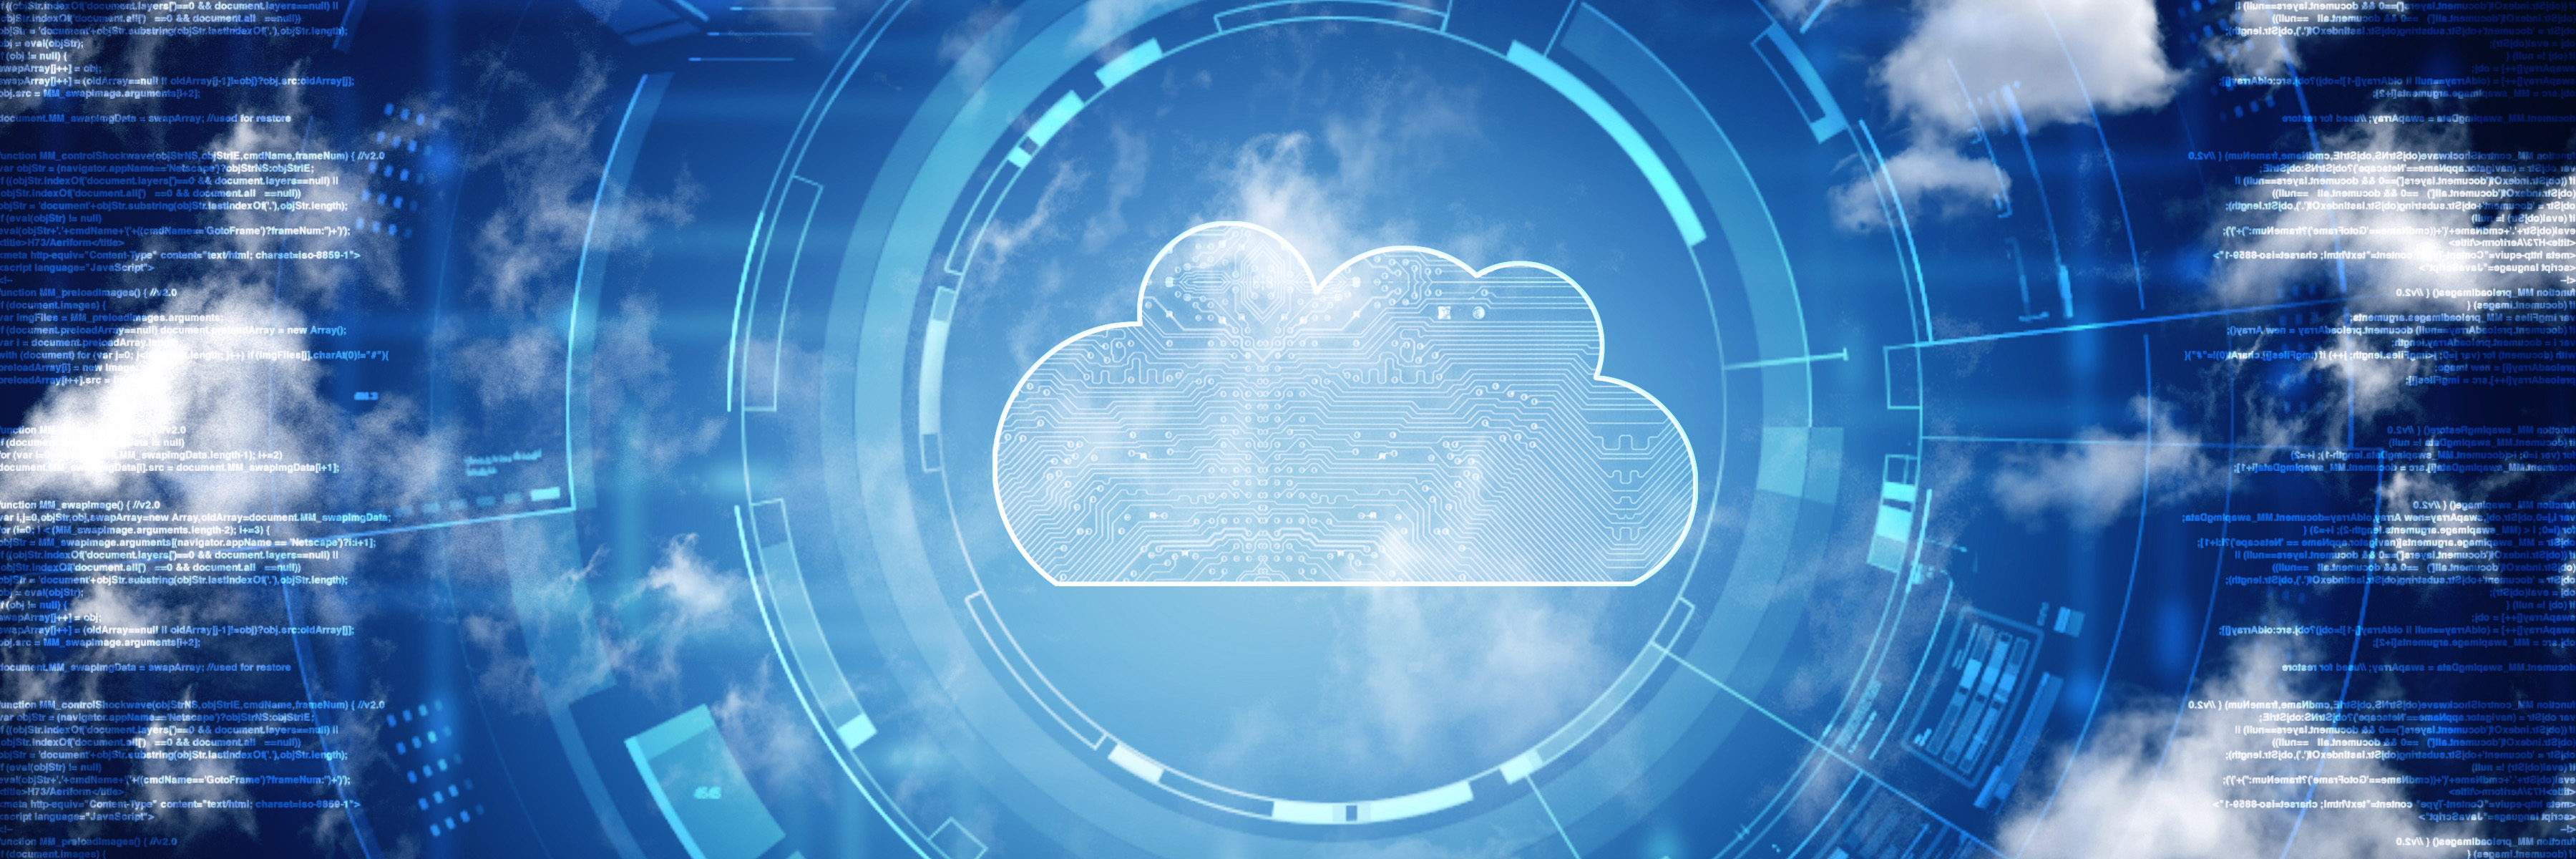 Cloud computing security workshop: call for industry input